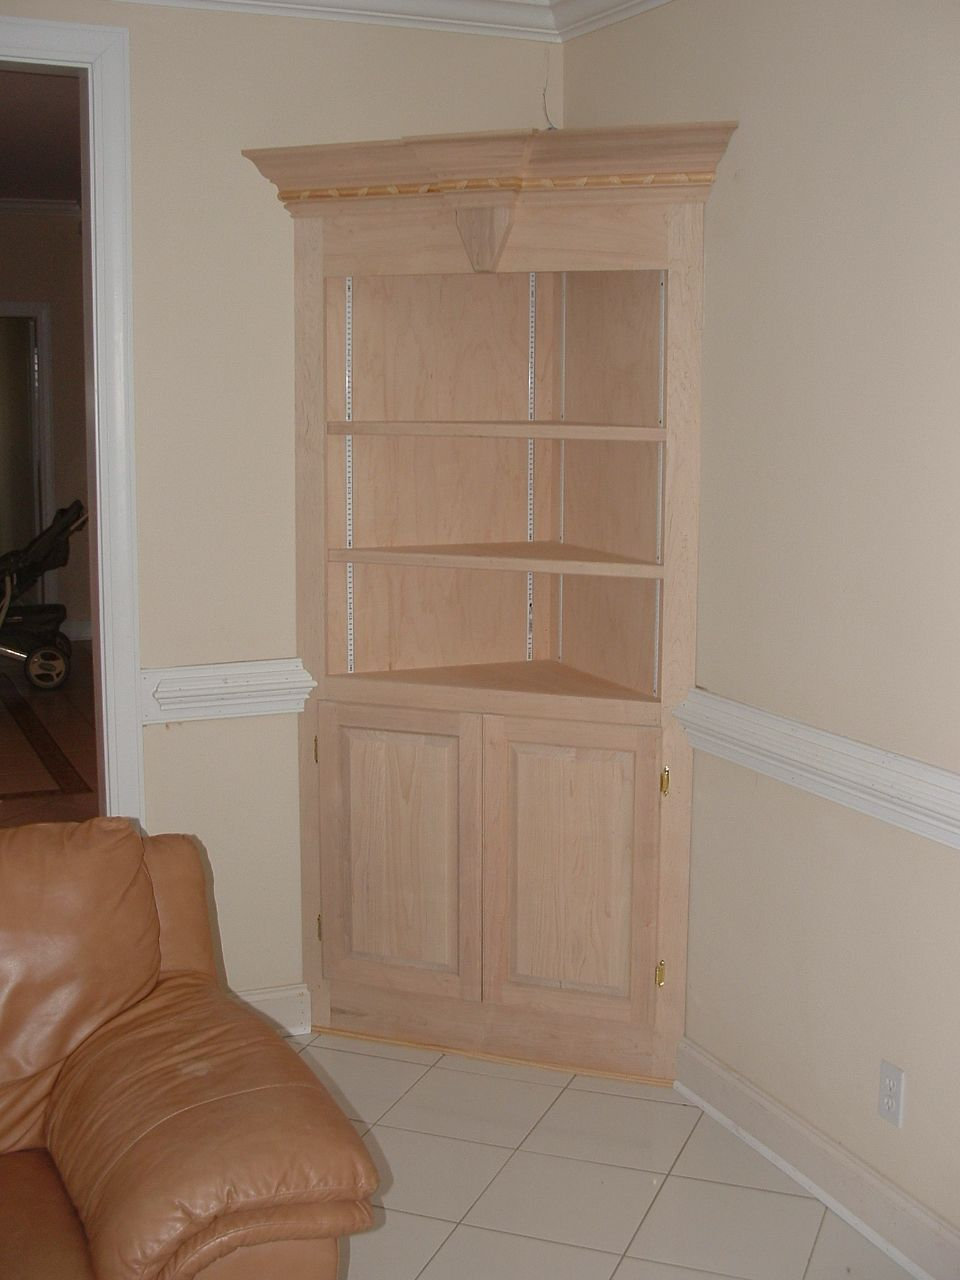 Using kitchen cabinets in the bathroom for storage corner cabinet 22962 bytes Bathroom corner cabinet storage